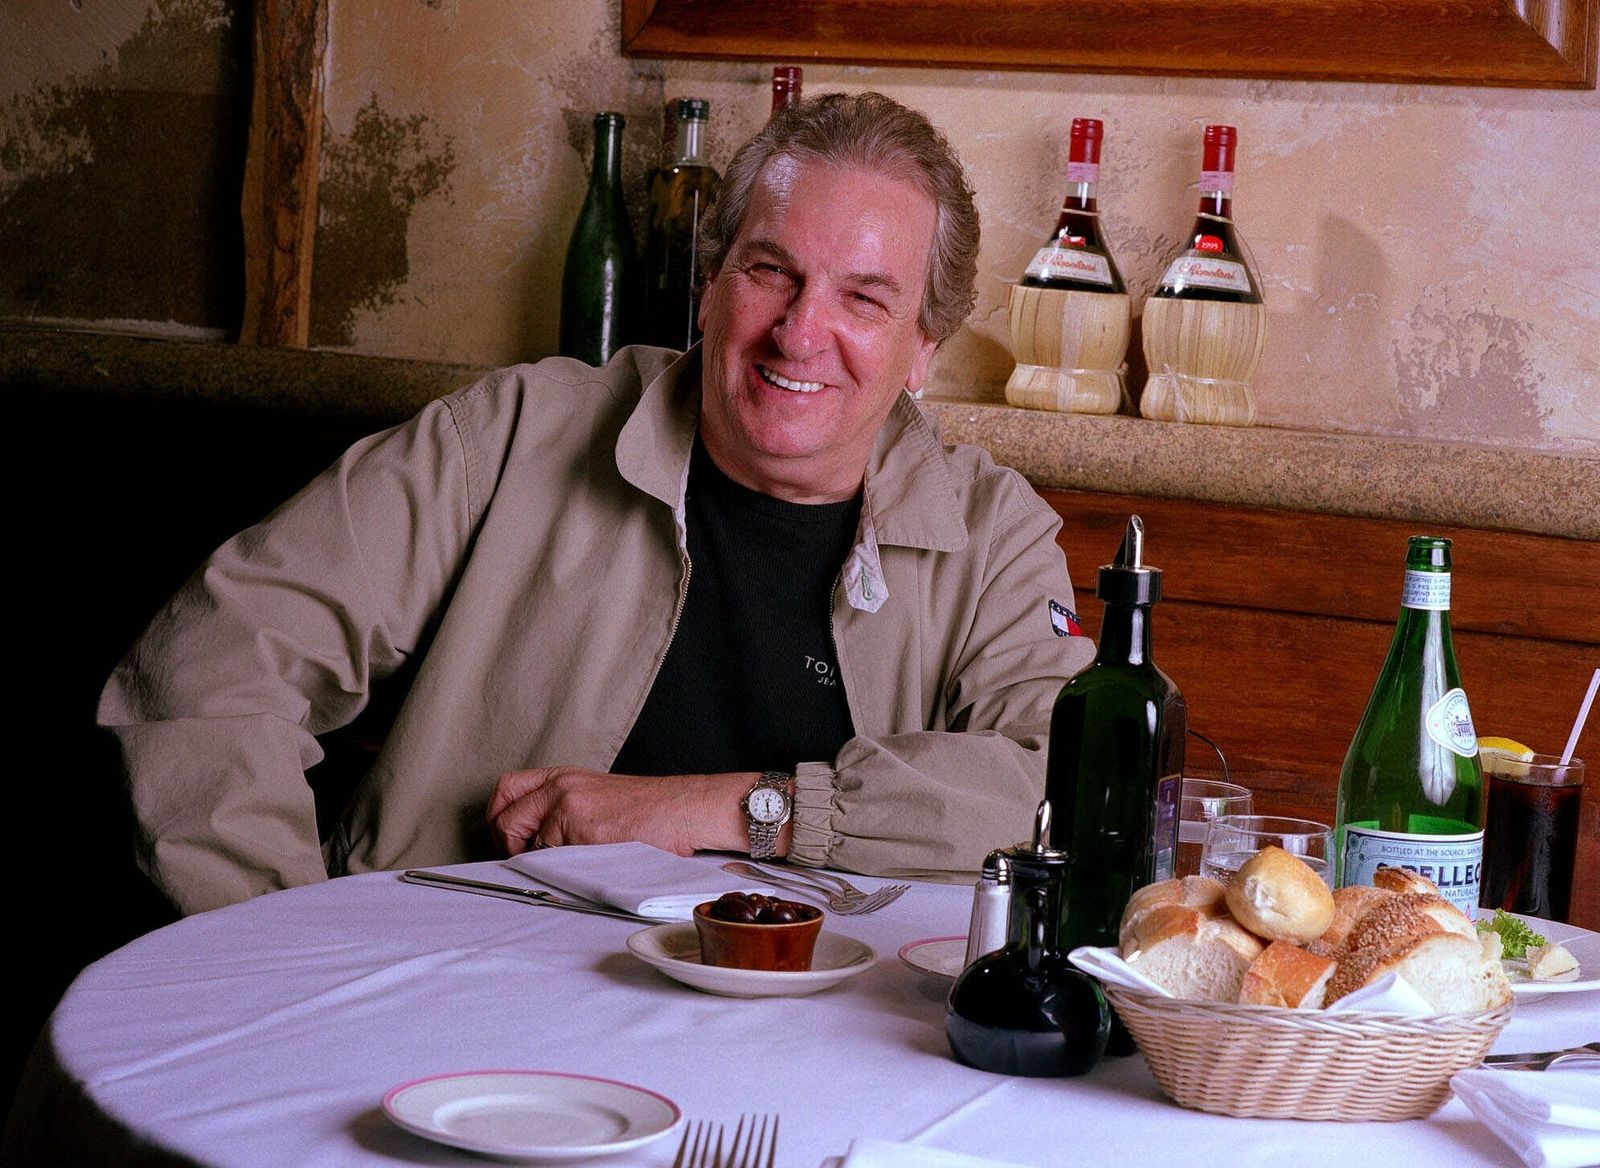 "FILE - In this July 28, 2001 file photo, Danny Aiello poses for a photo at Gigino restaurant in New York. Aiello, the blue-collar character actor whose long career playing tough guys included roles in ""Fort Apache, the Bronx,""  ""The Godfather, Part II,"" ""Once Upon a Time in America"" and his Oscar-nominated performance as a pizza man in Spike Lee's ""Do the Right Thing,"" has died.{ } (AP Photo/Jim Cooper, File)"